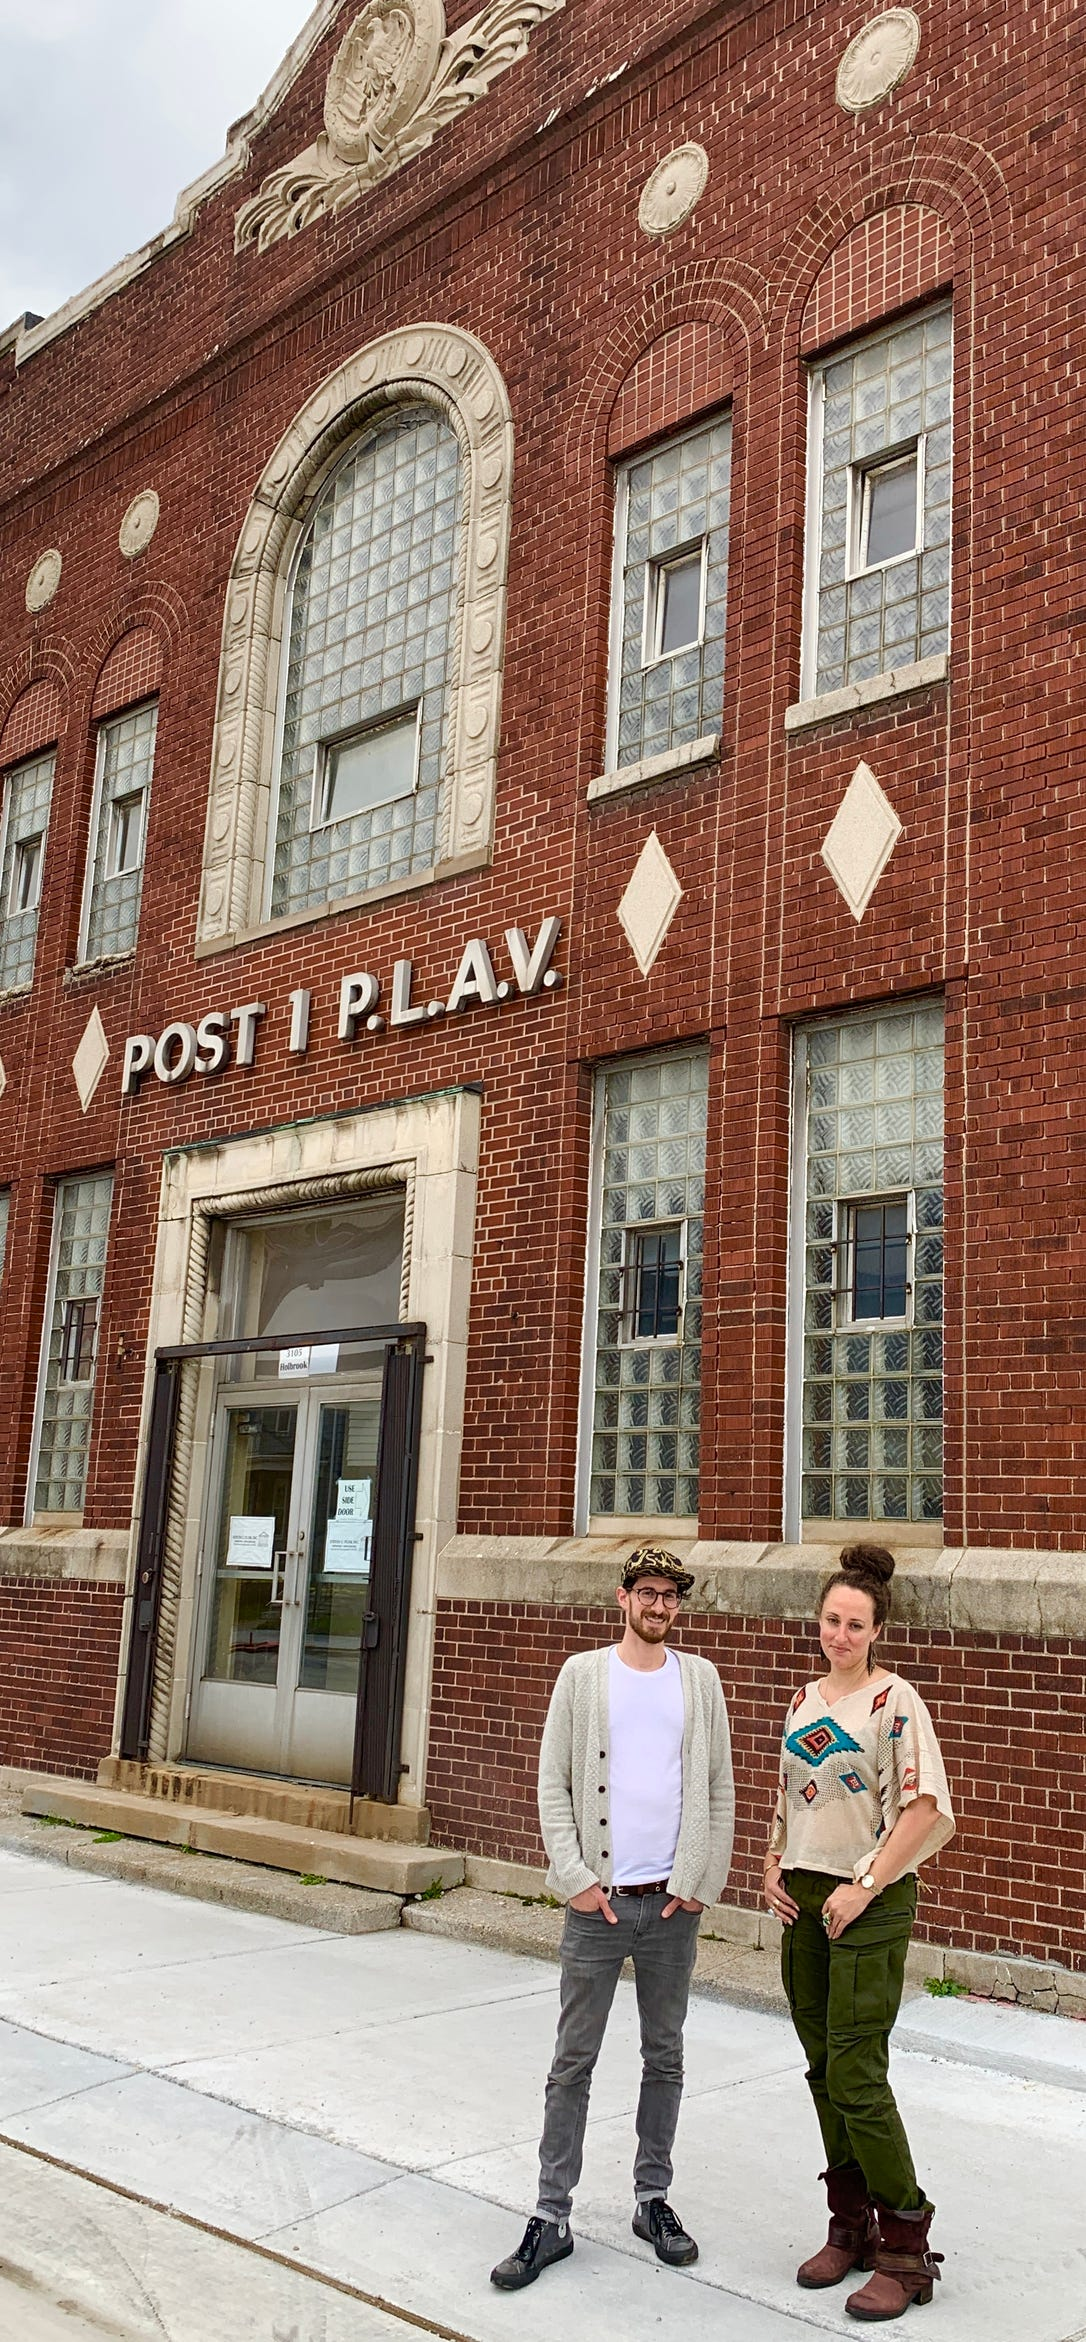 Josh Gardner and Lara Sfire are opening The Film Lab at 3105 Holbrook Avenue in Hamtramck, the former POST 1 P.L.A.V. building.